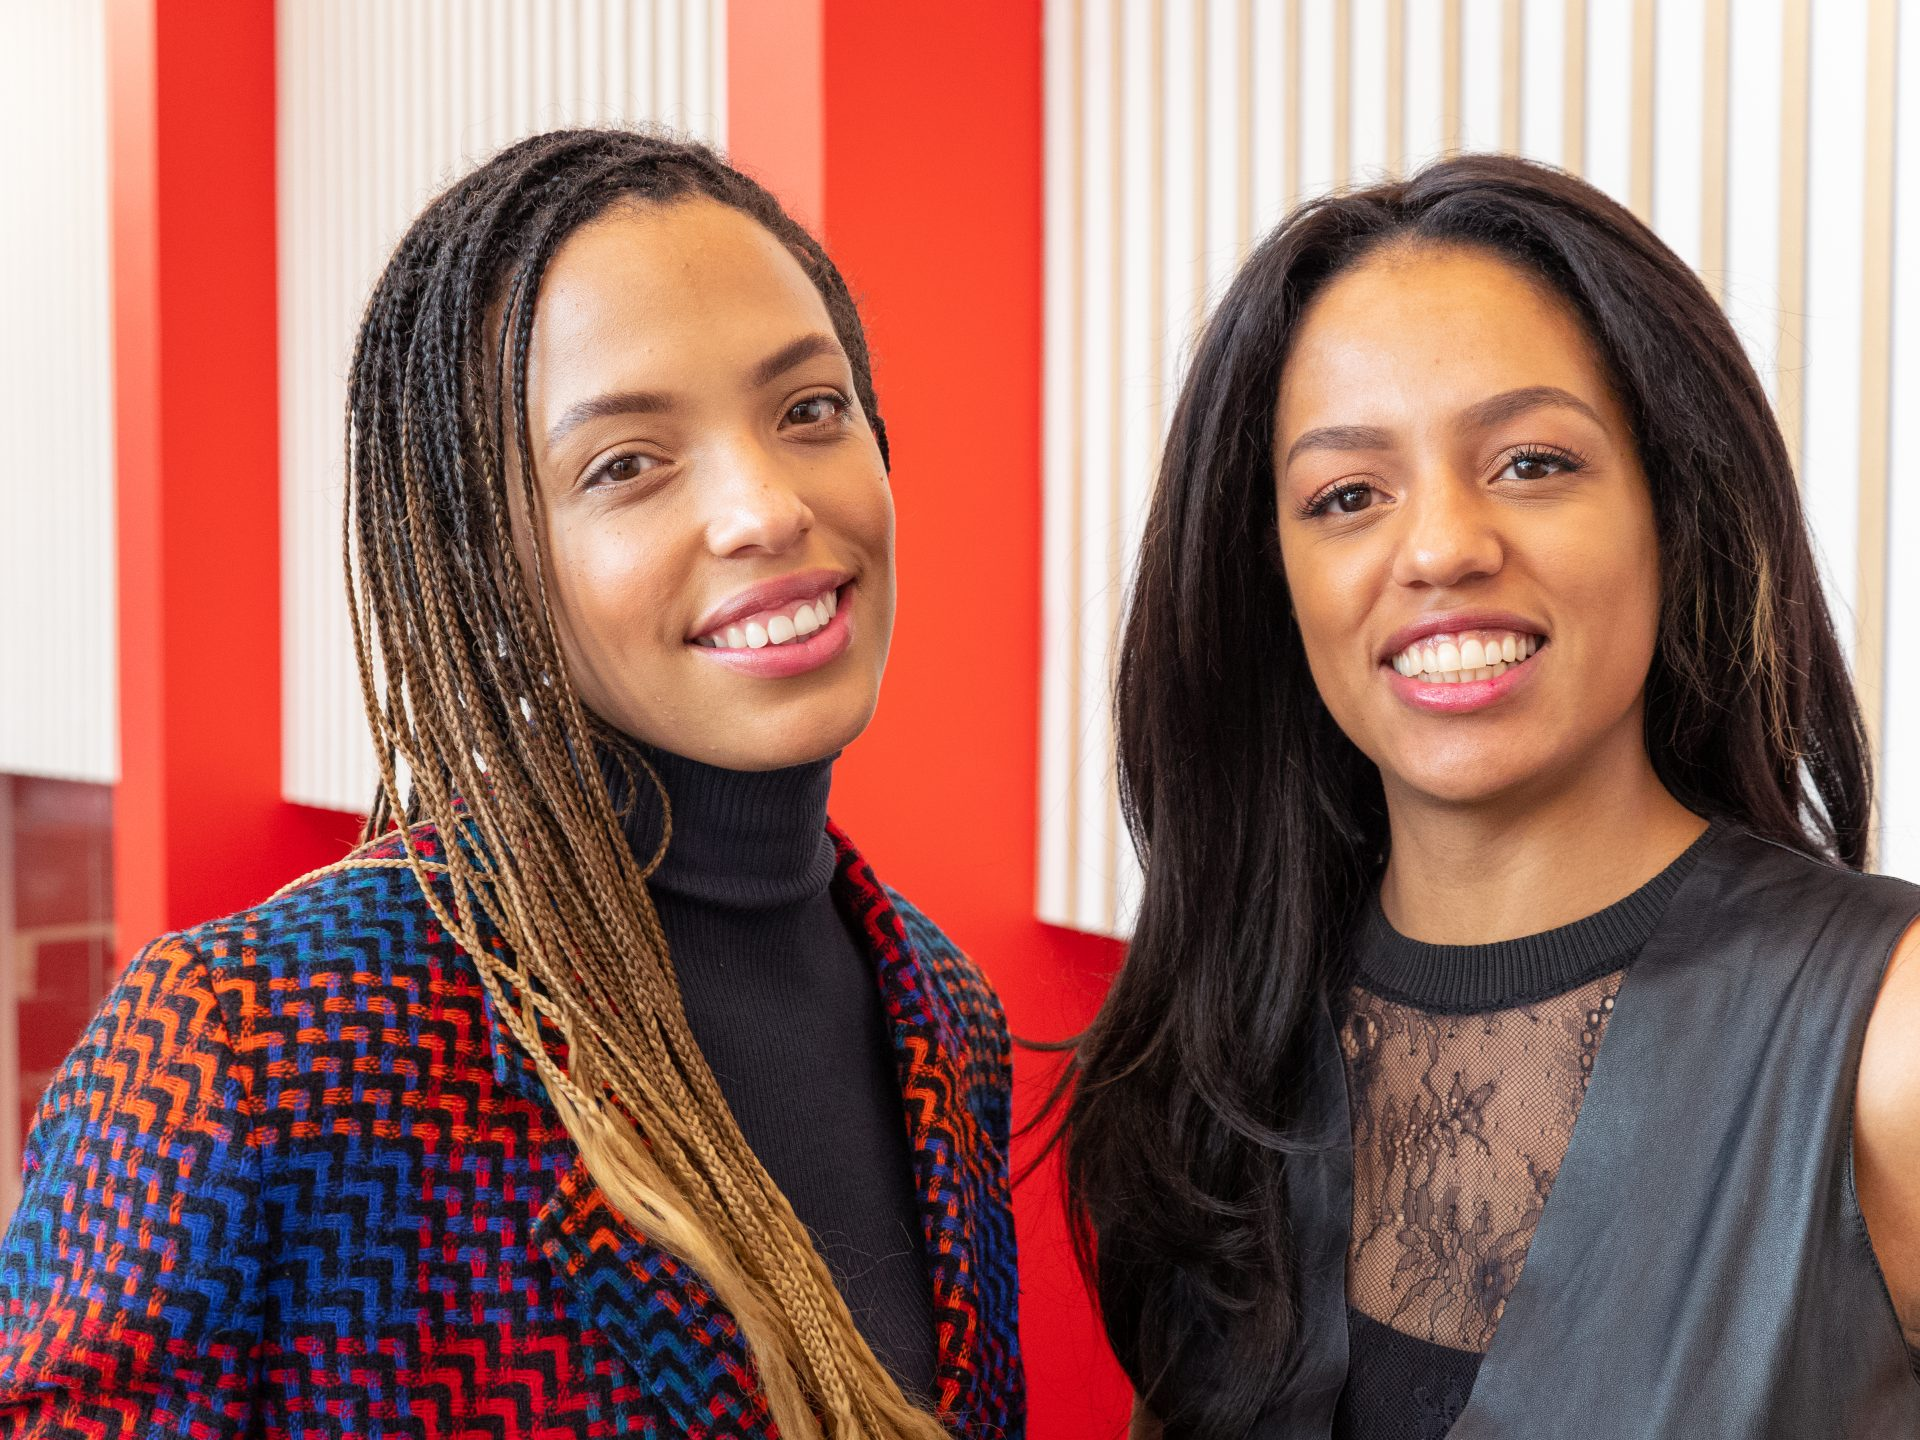 Charlotte and Emma Roberston, founders of Digital Awareness UK